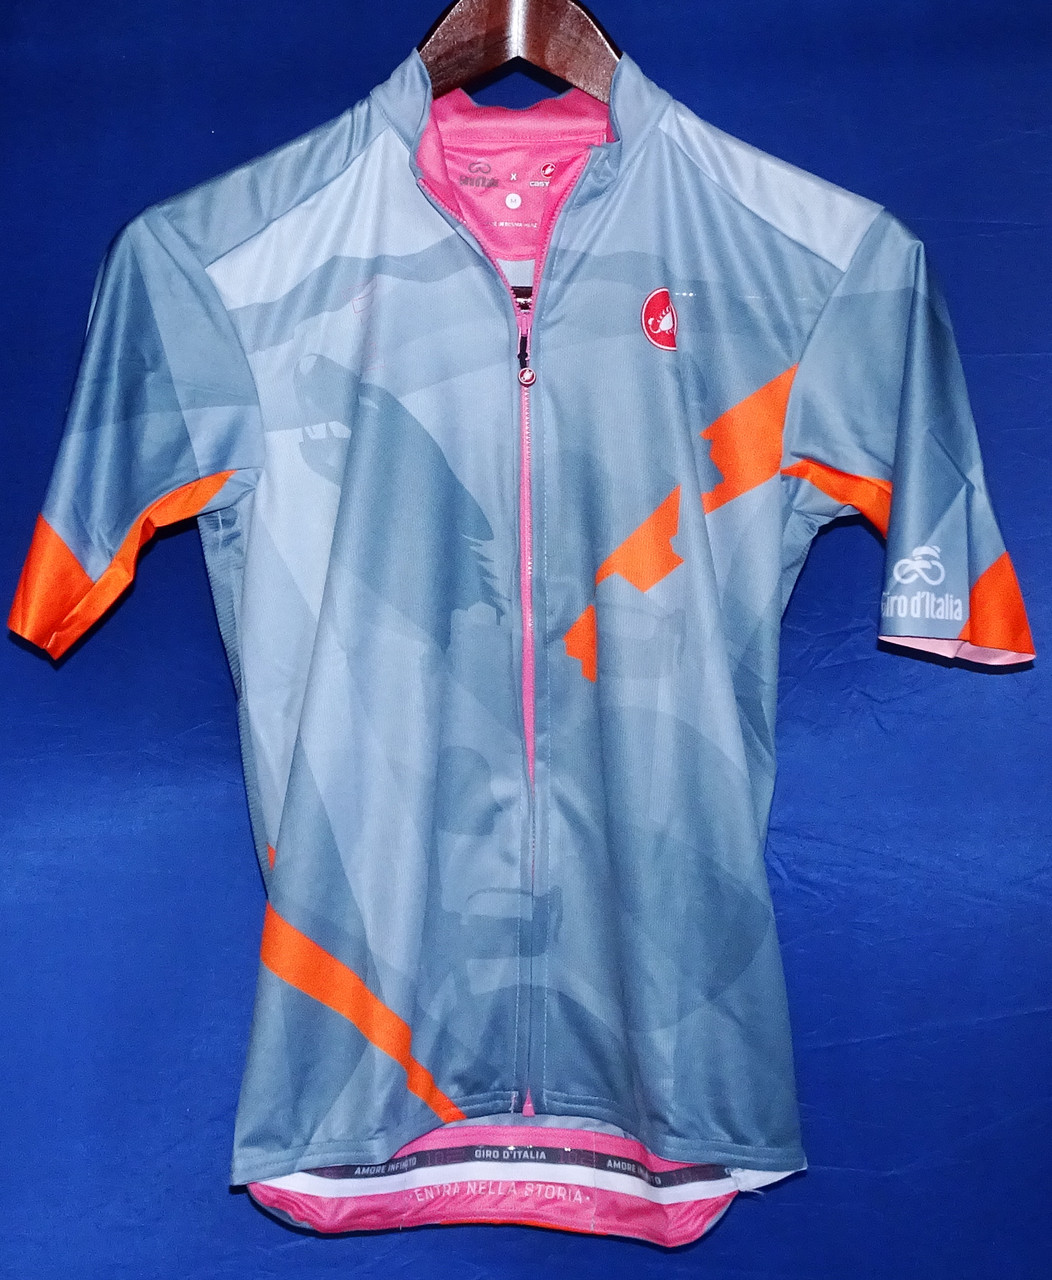 Feltre Croce D Aune Giro Stage Series Jersey Front